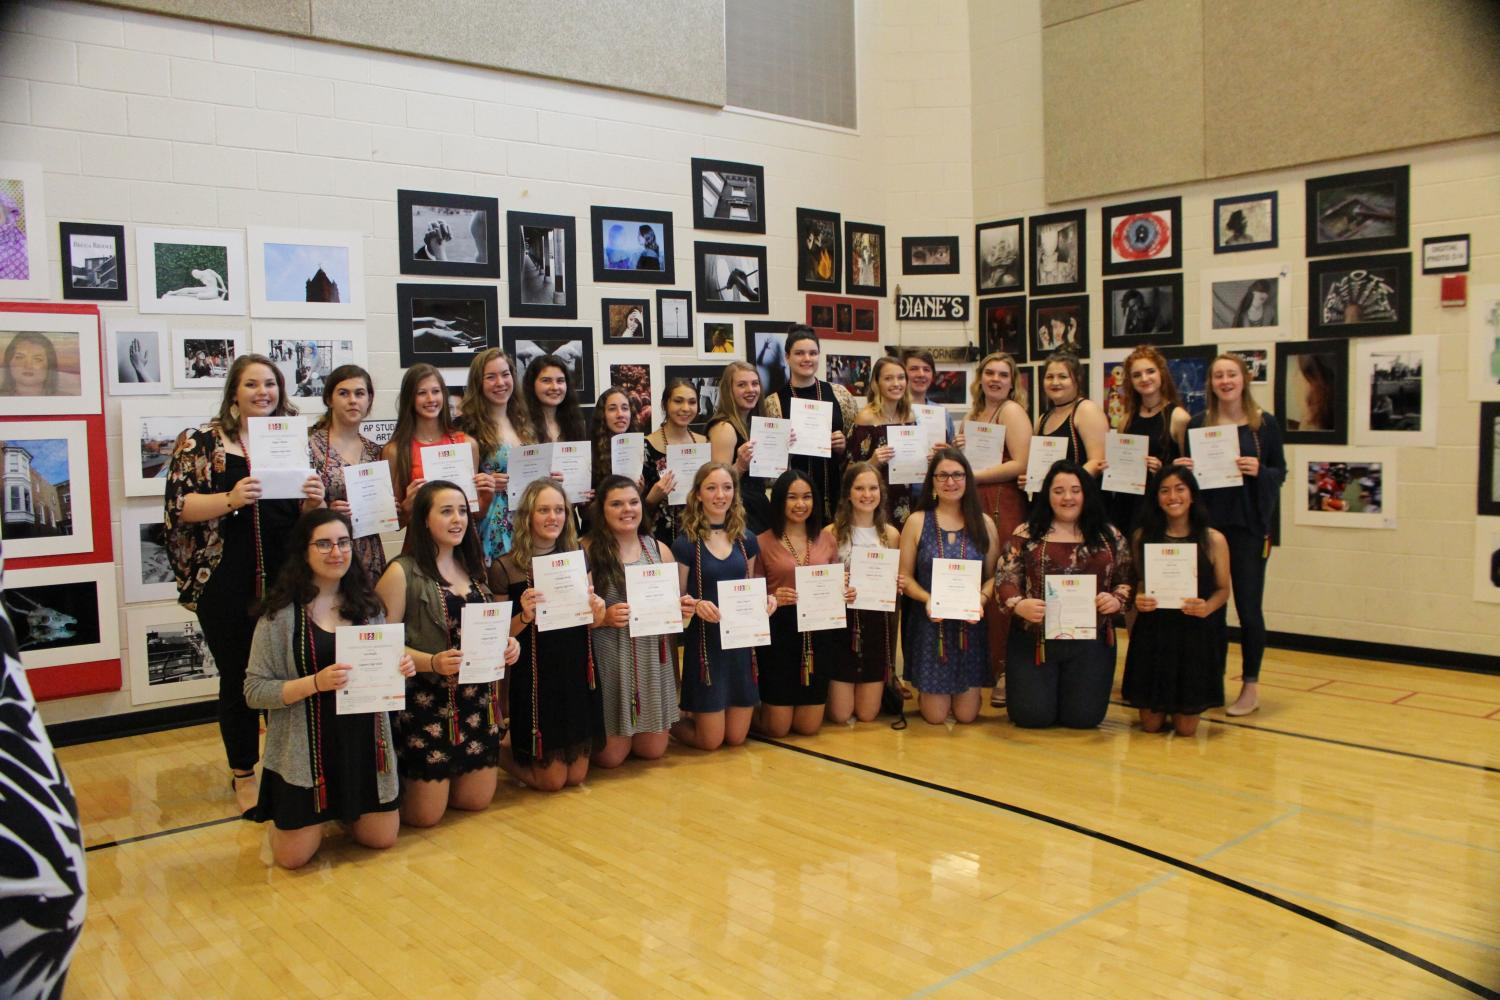 Members of NAHS celebrate their successful art show.